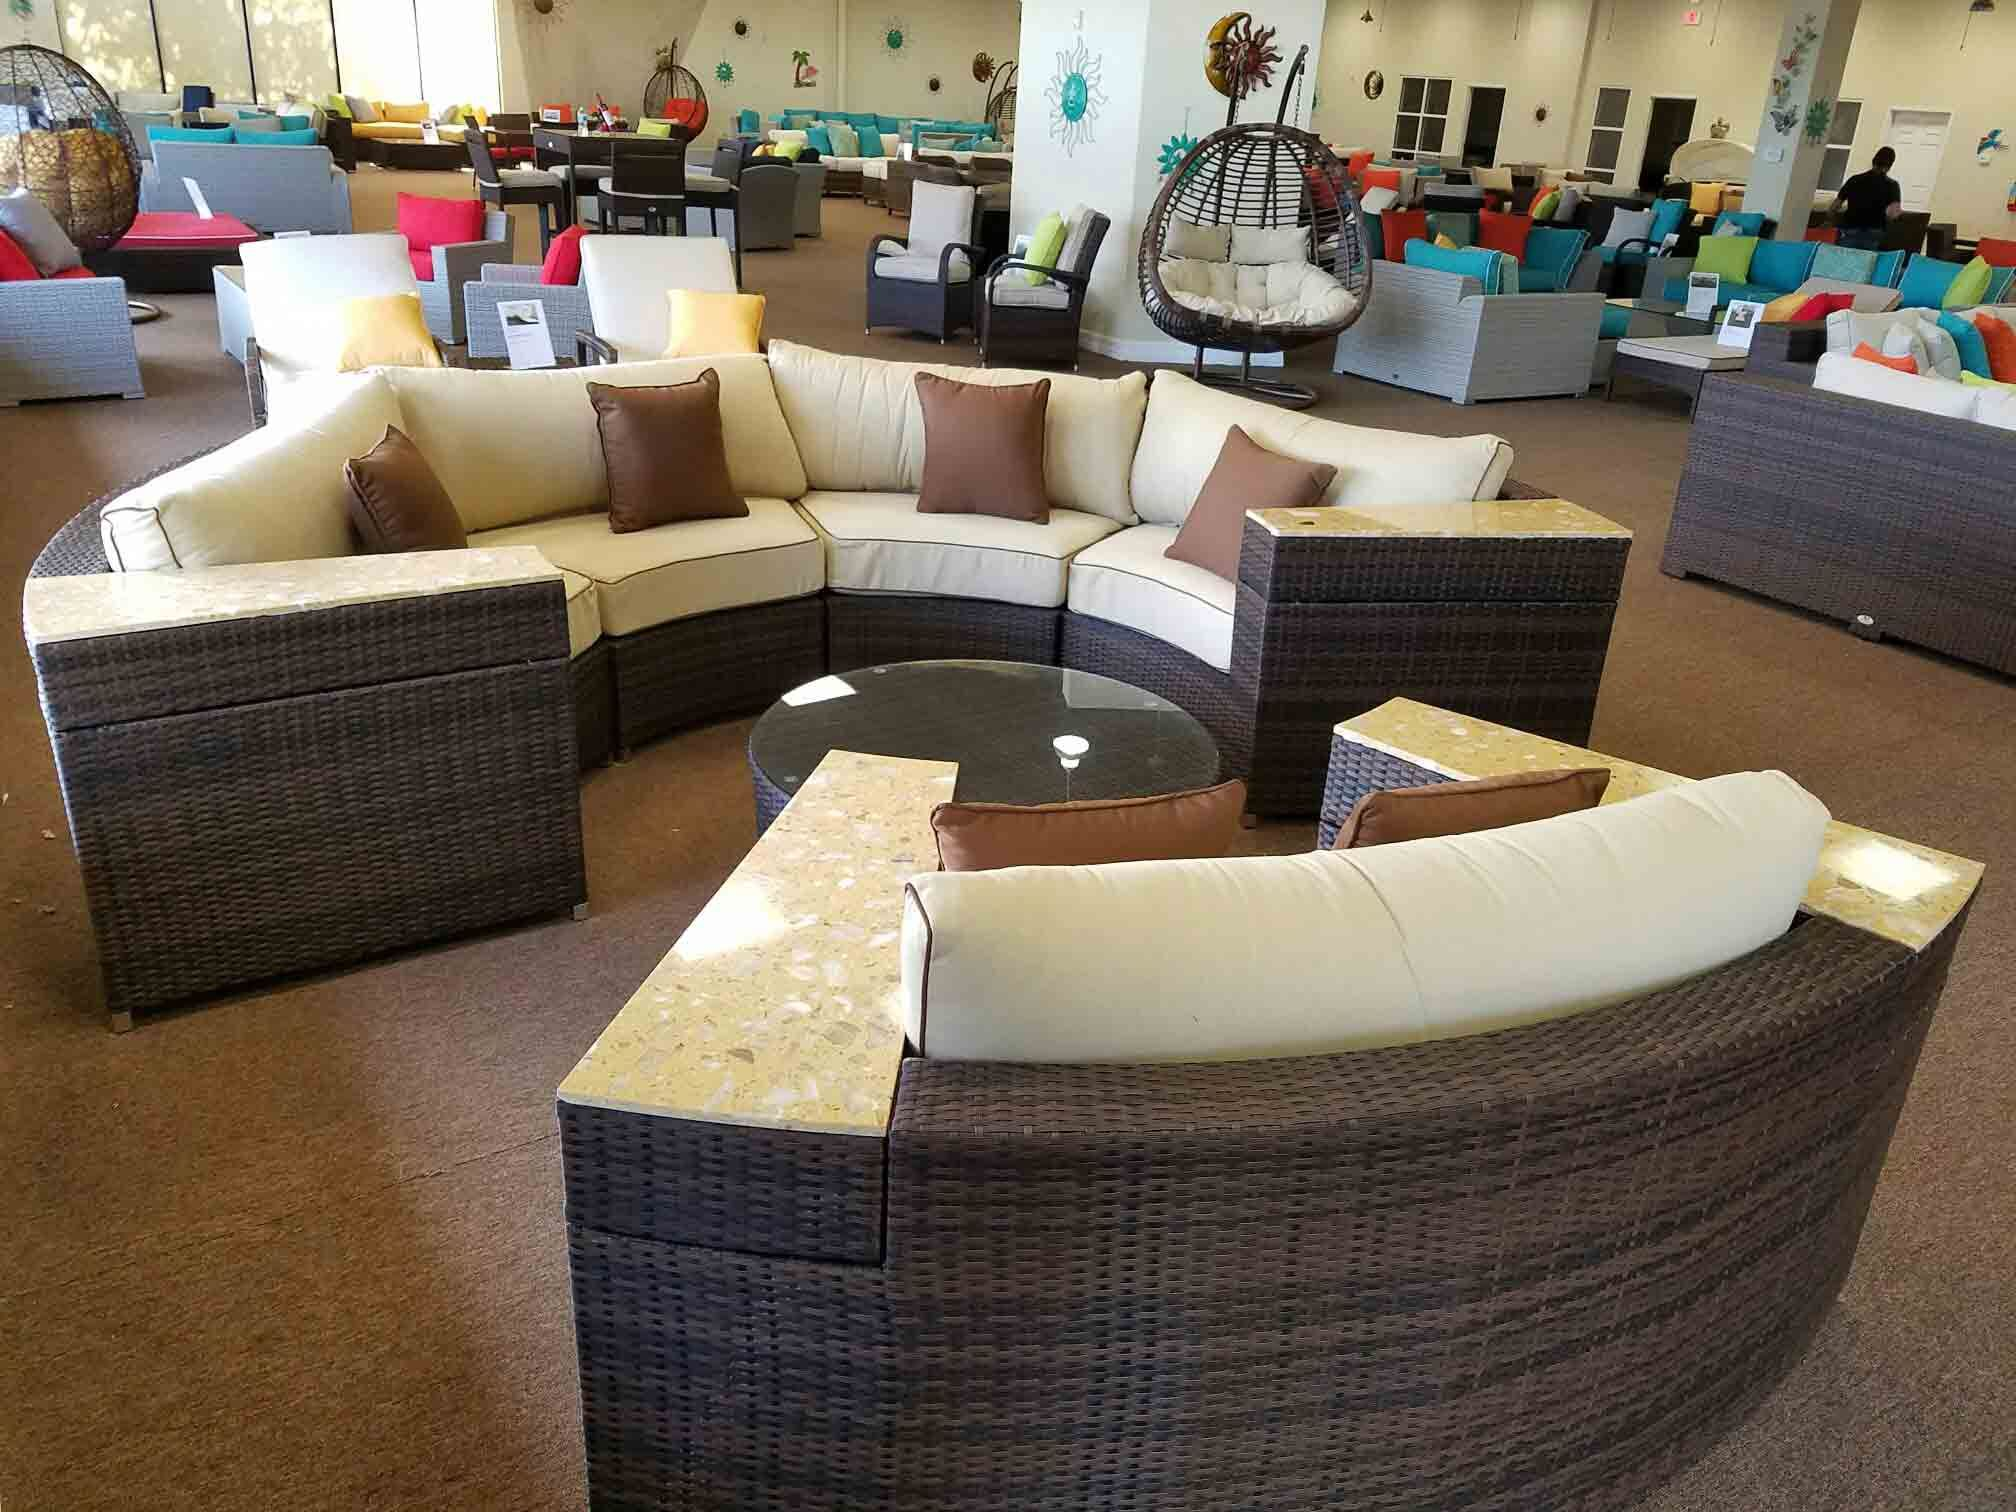 daybed corner round circle sofa sectional semi awesome livingroom enchanting chairfoldable circular rounded ilbl sunset couch co curved west lounge